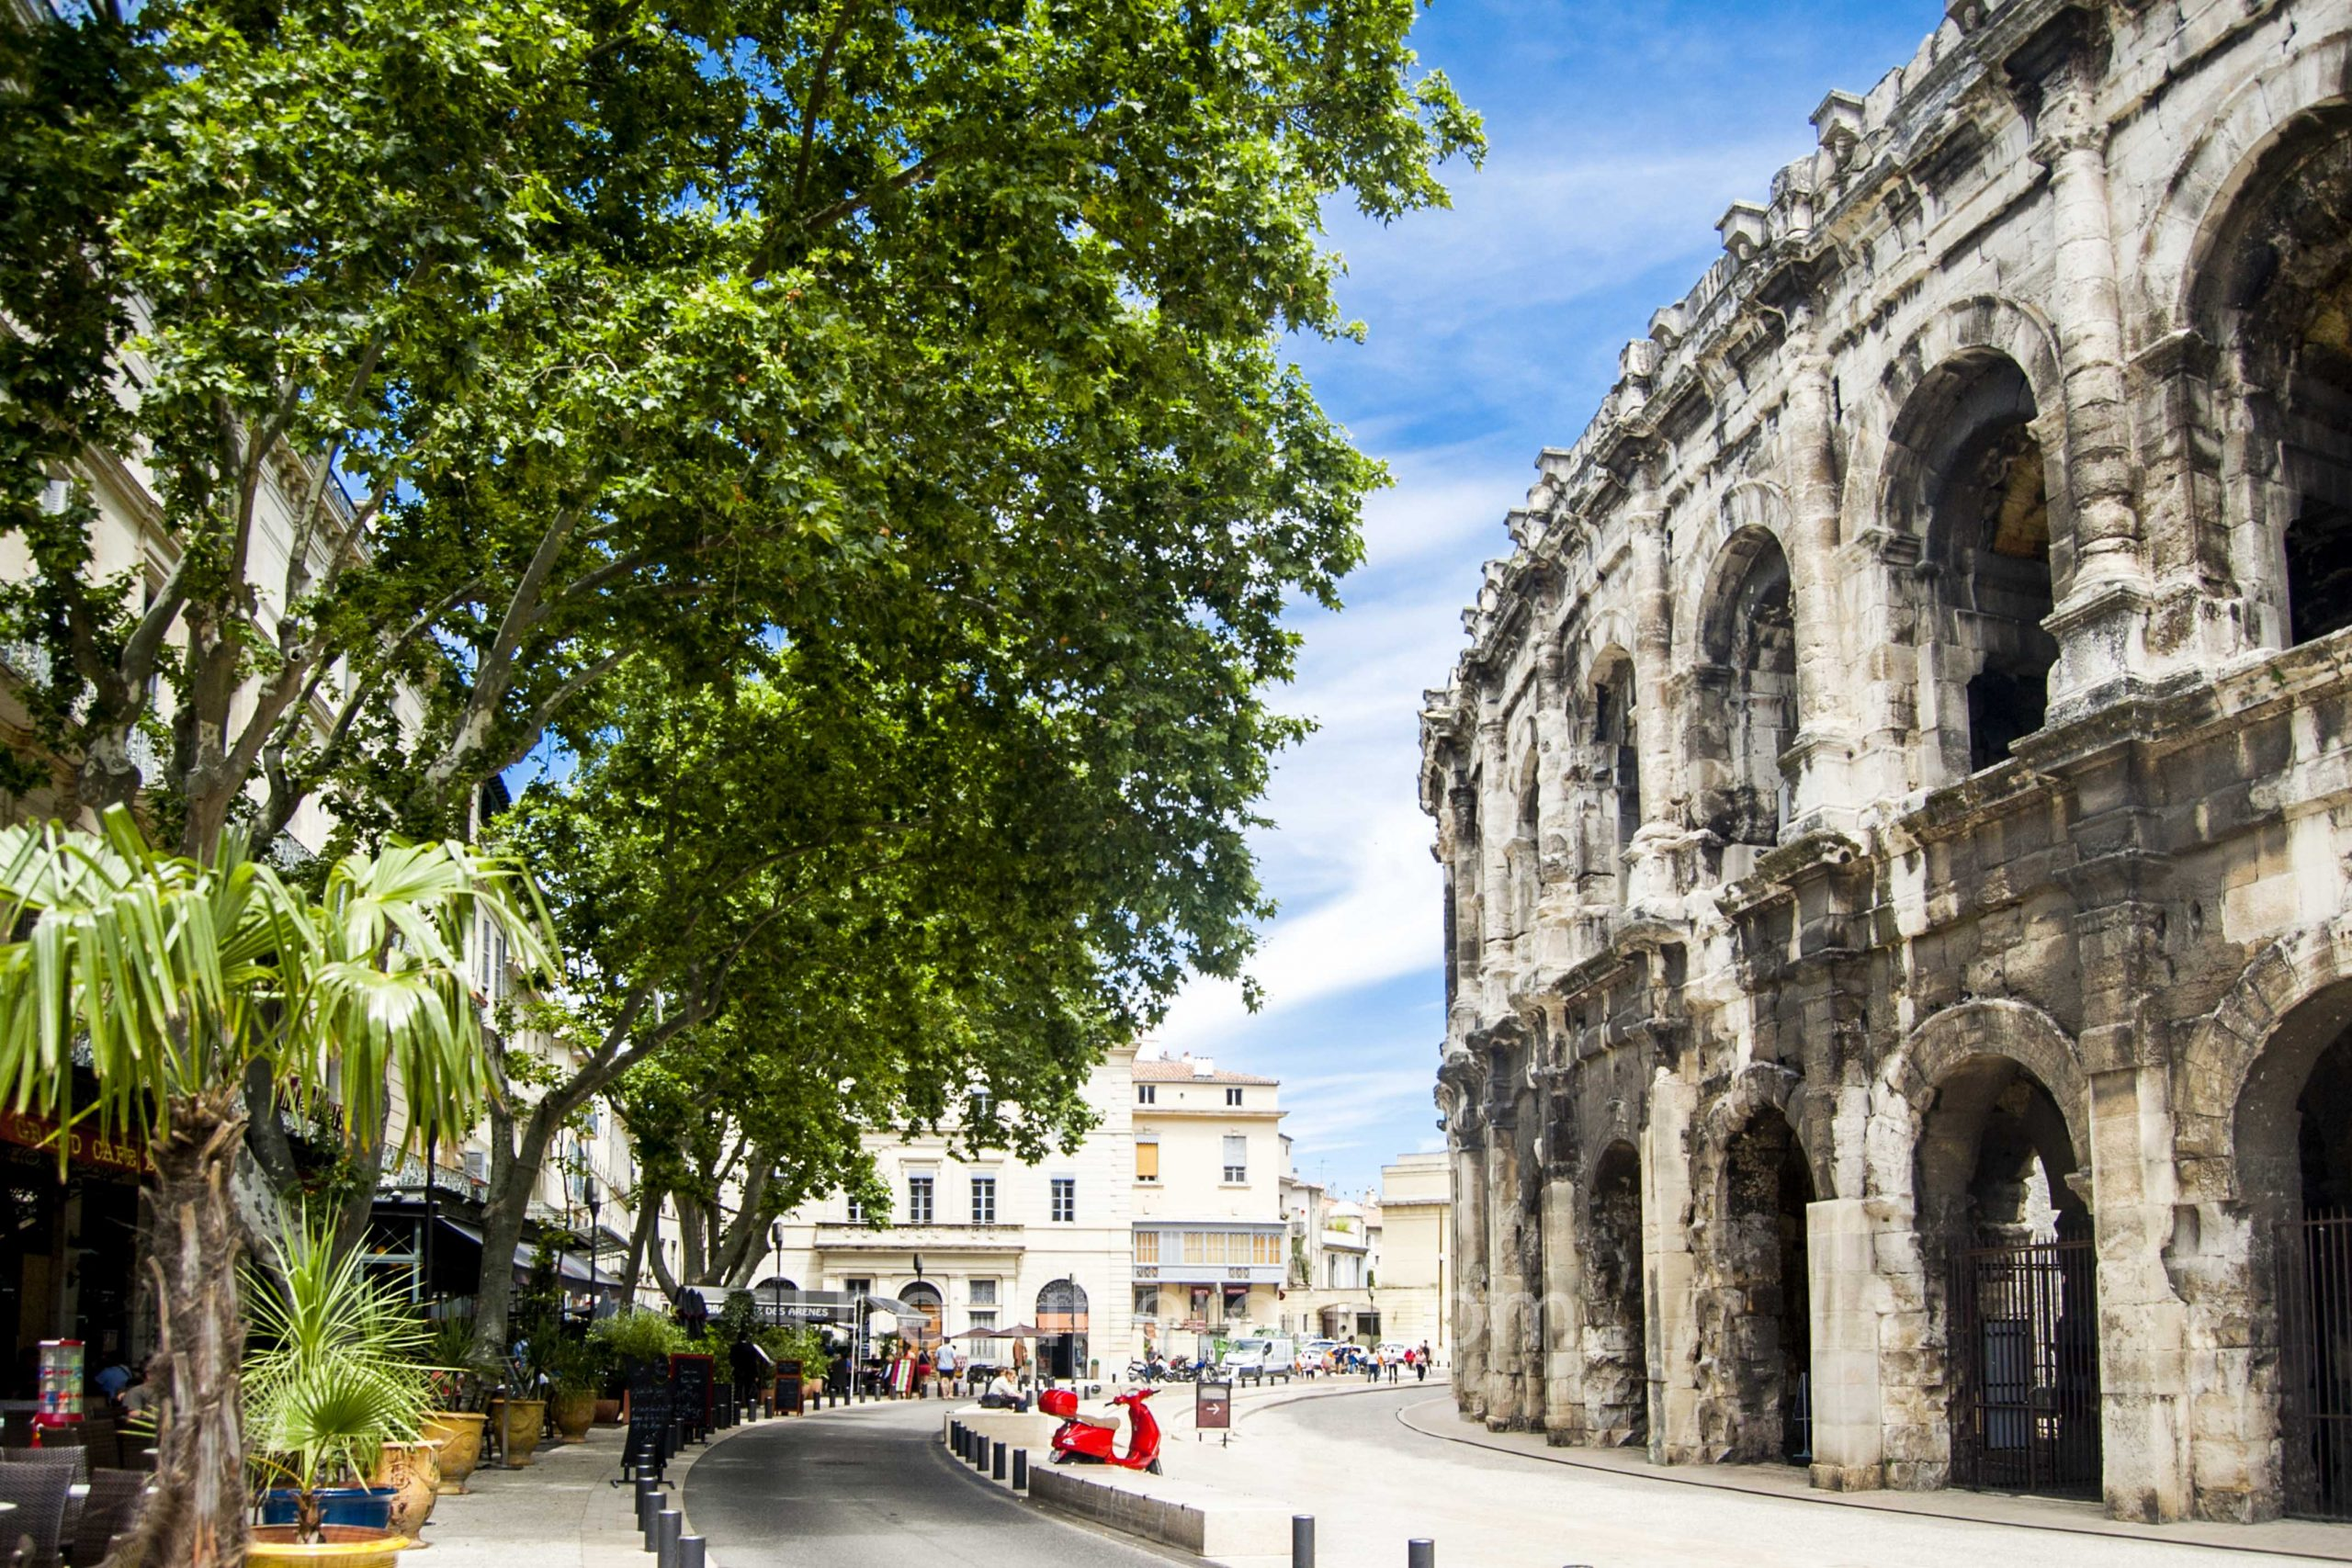 Outside the arenes of Nimes